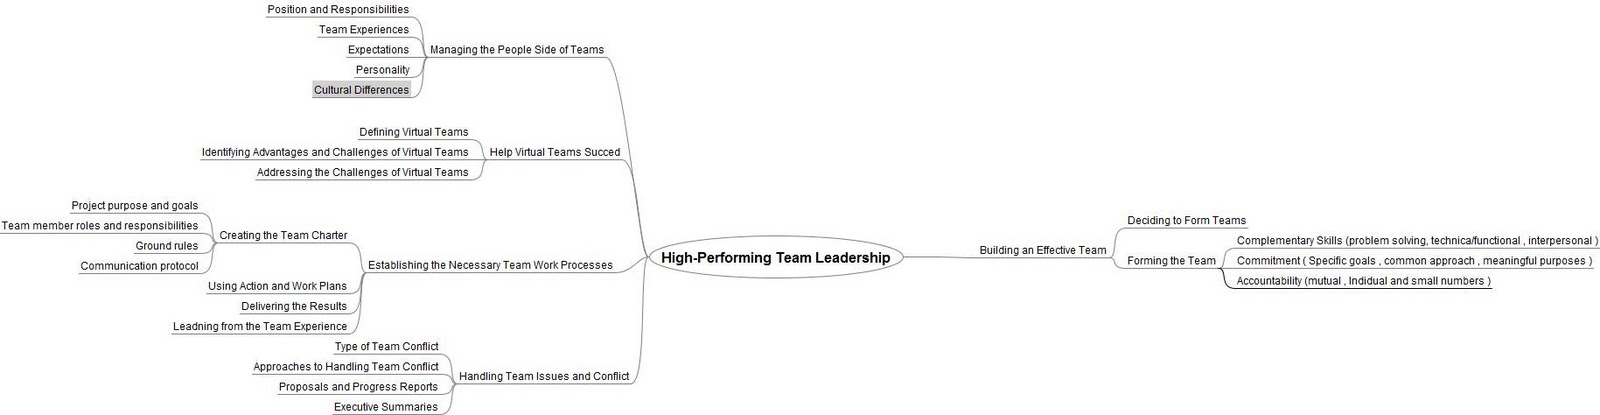 individual differences within a team charter Specifications of the team mission, roles of individual team members, authority and boundaries of the team and its members, and also different resources that can be utilized to support team members as they move forward.